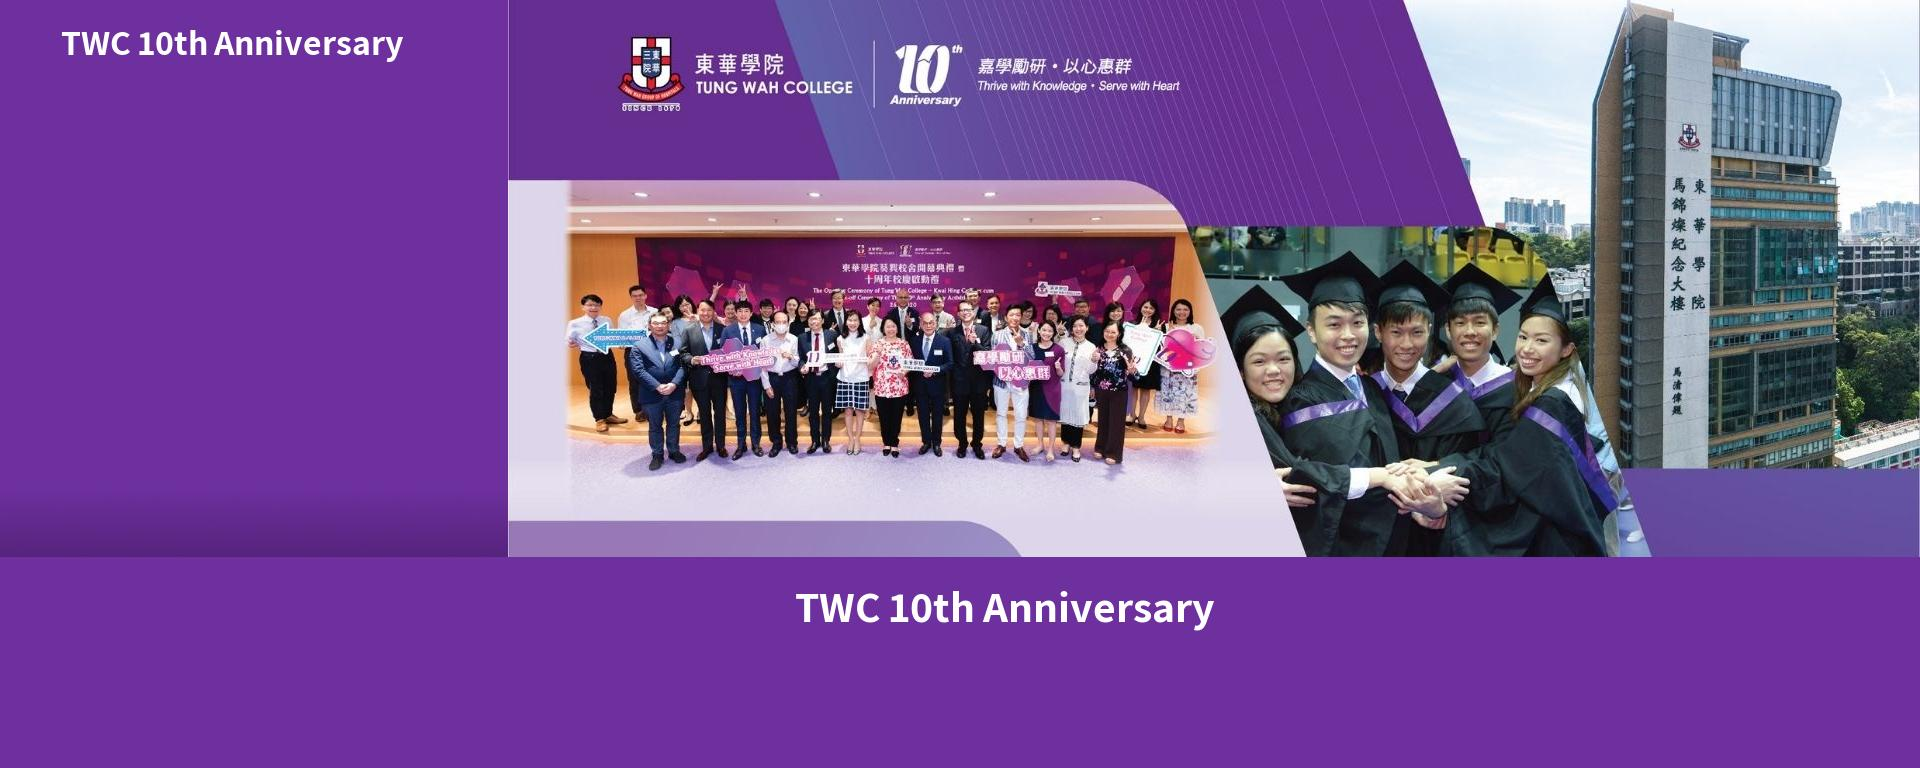 TWC 10th Anniversary